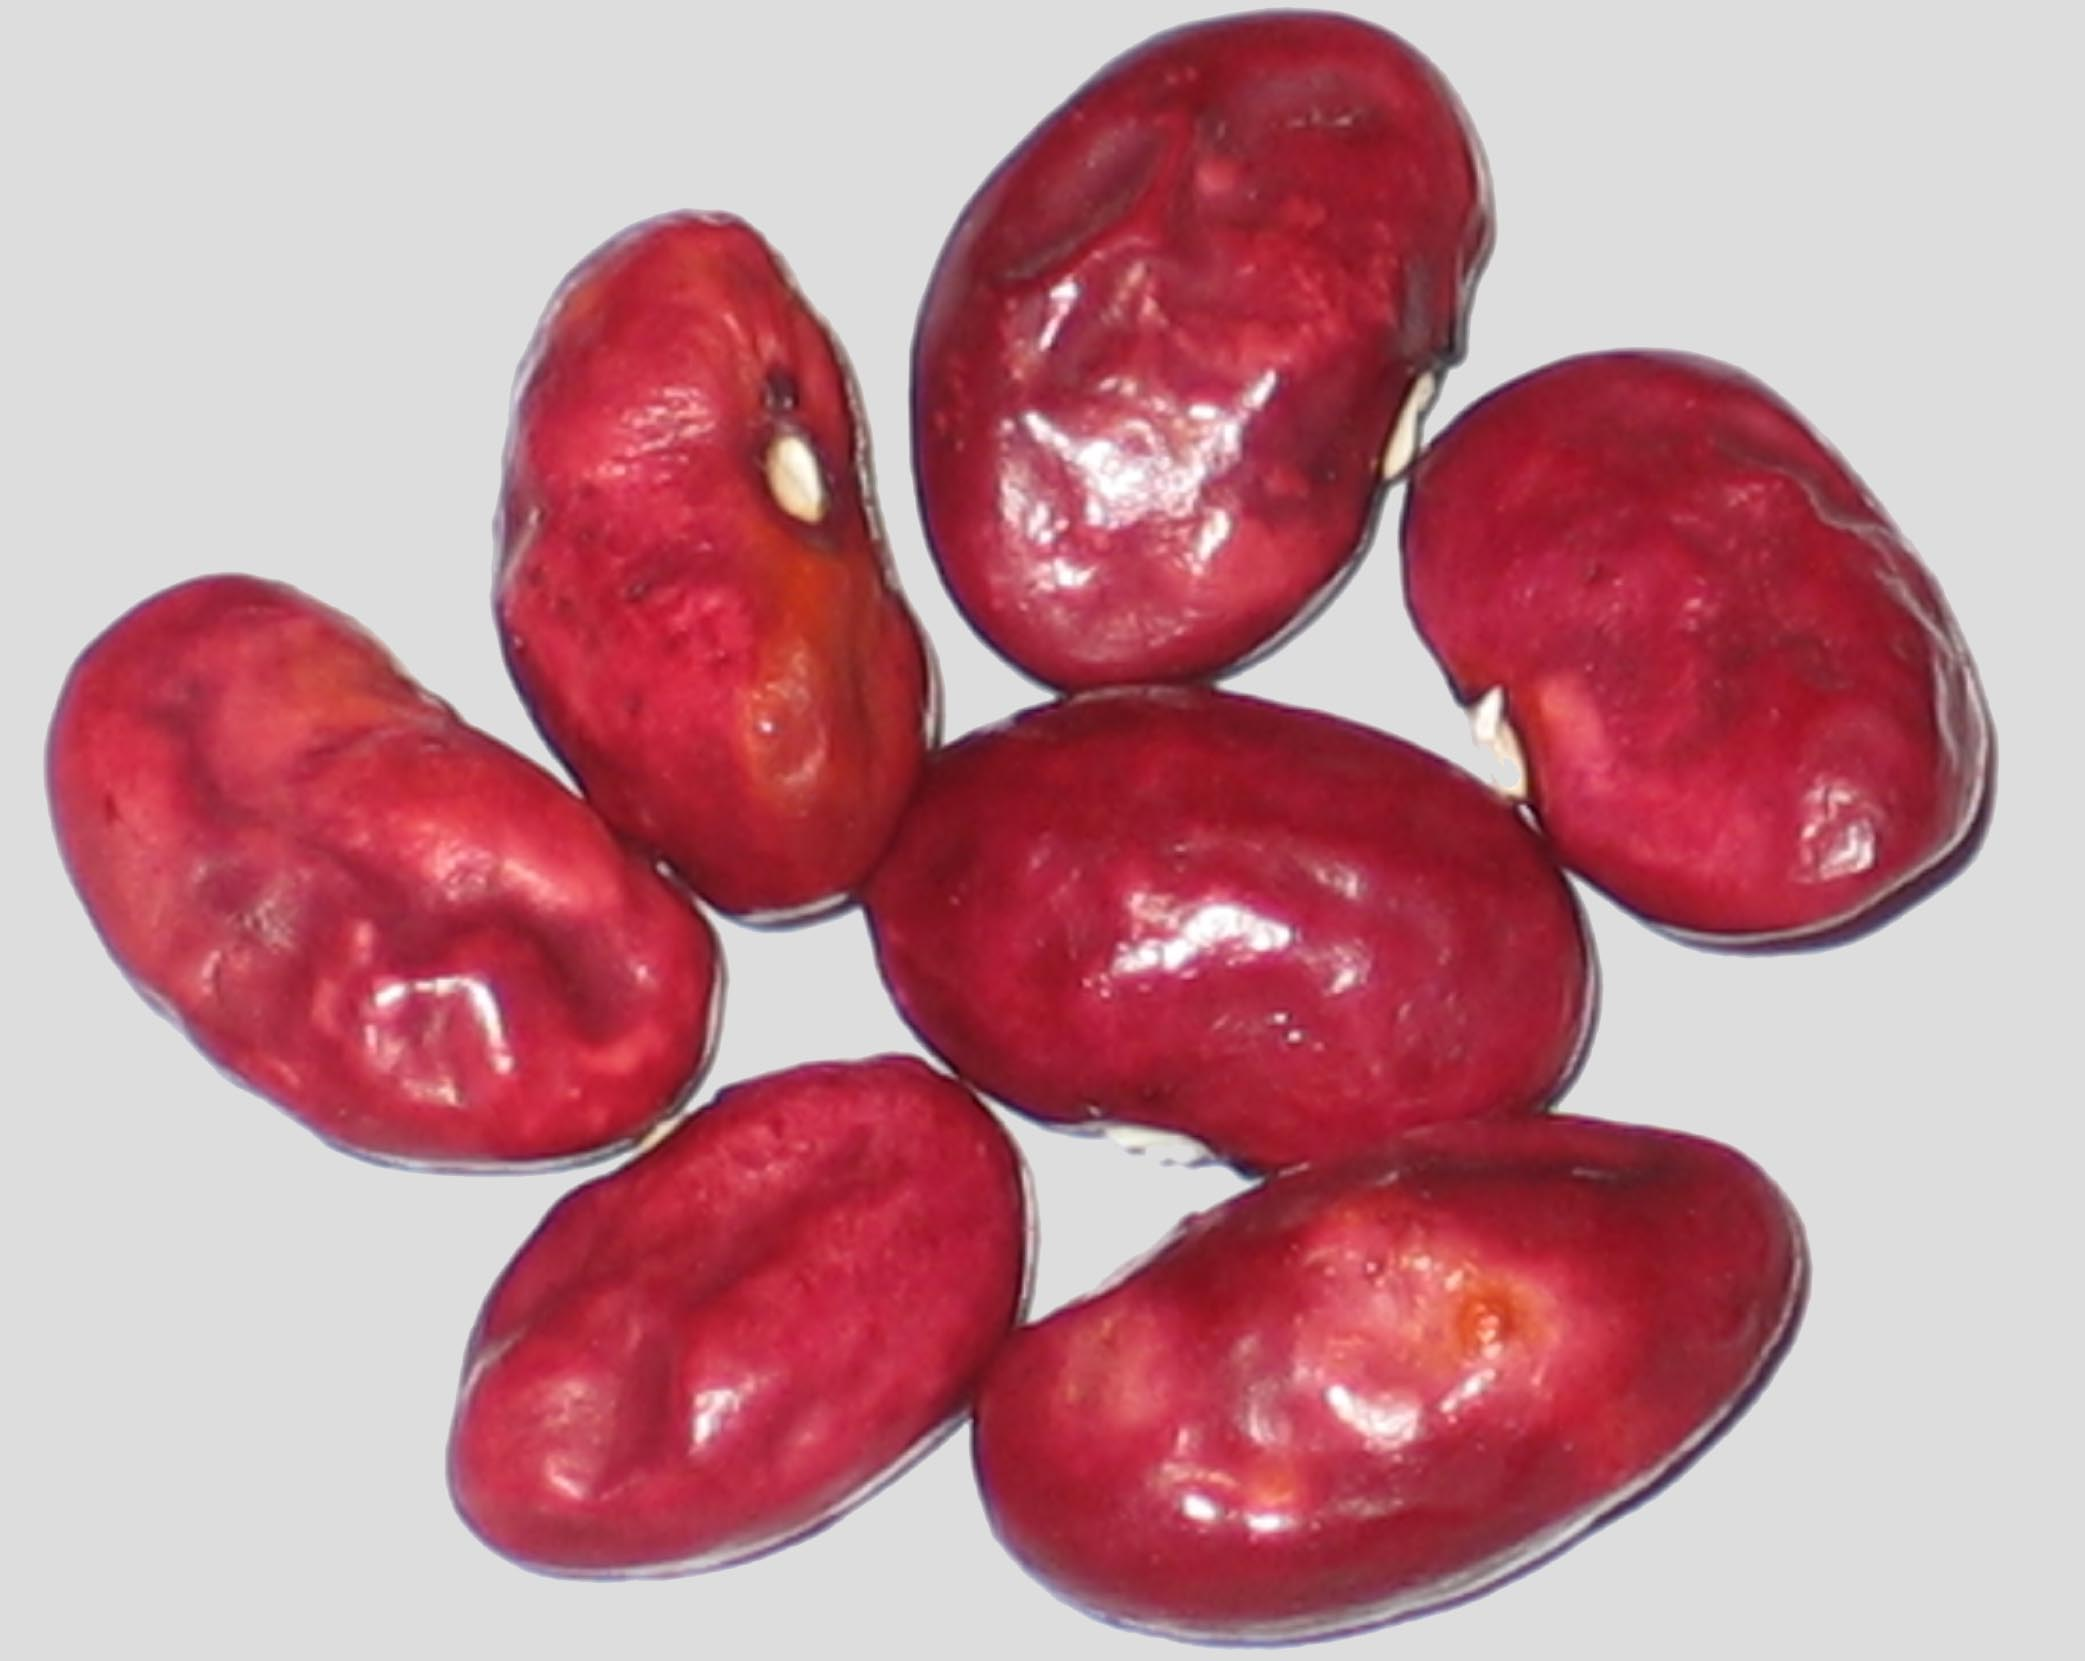 image of Flat Hollow beans